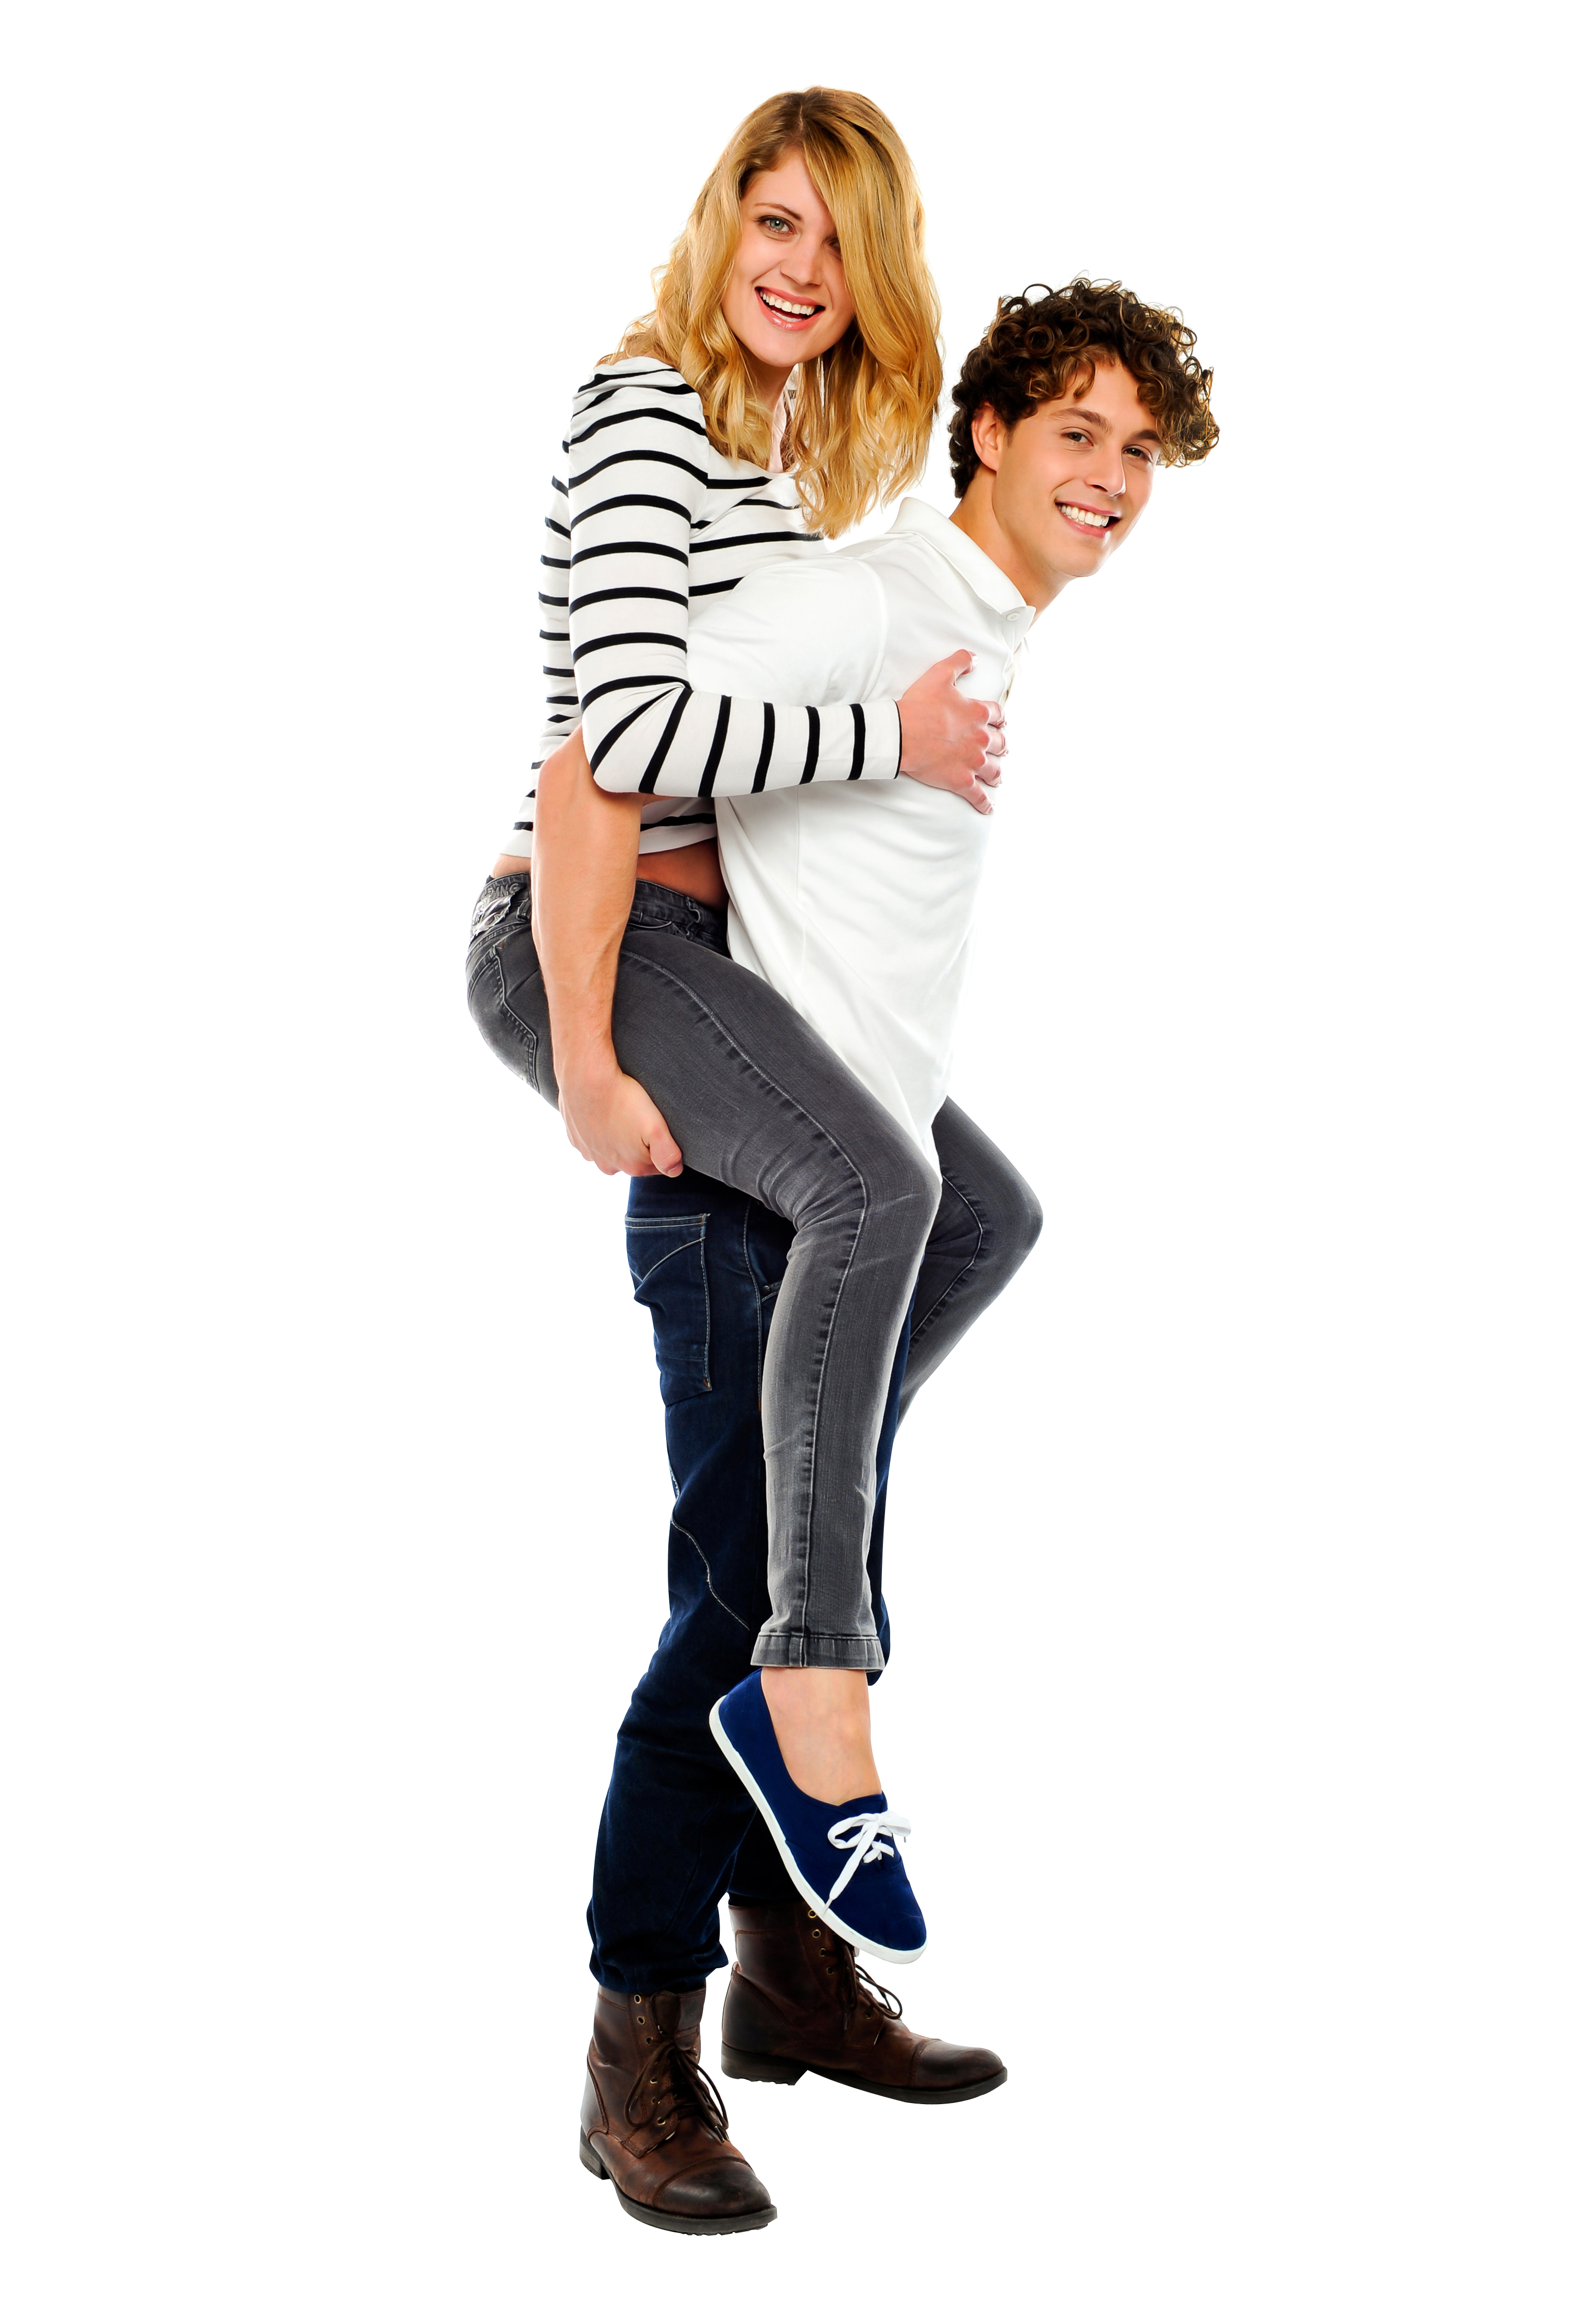 Love couple png. Image purepng free transparent